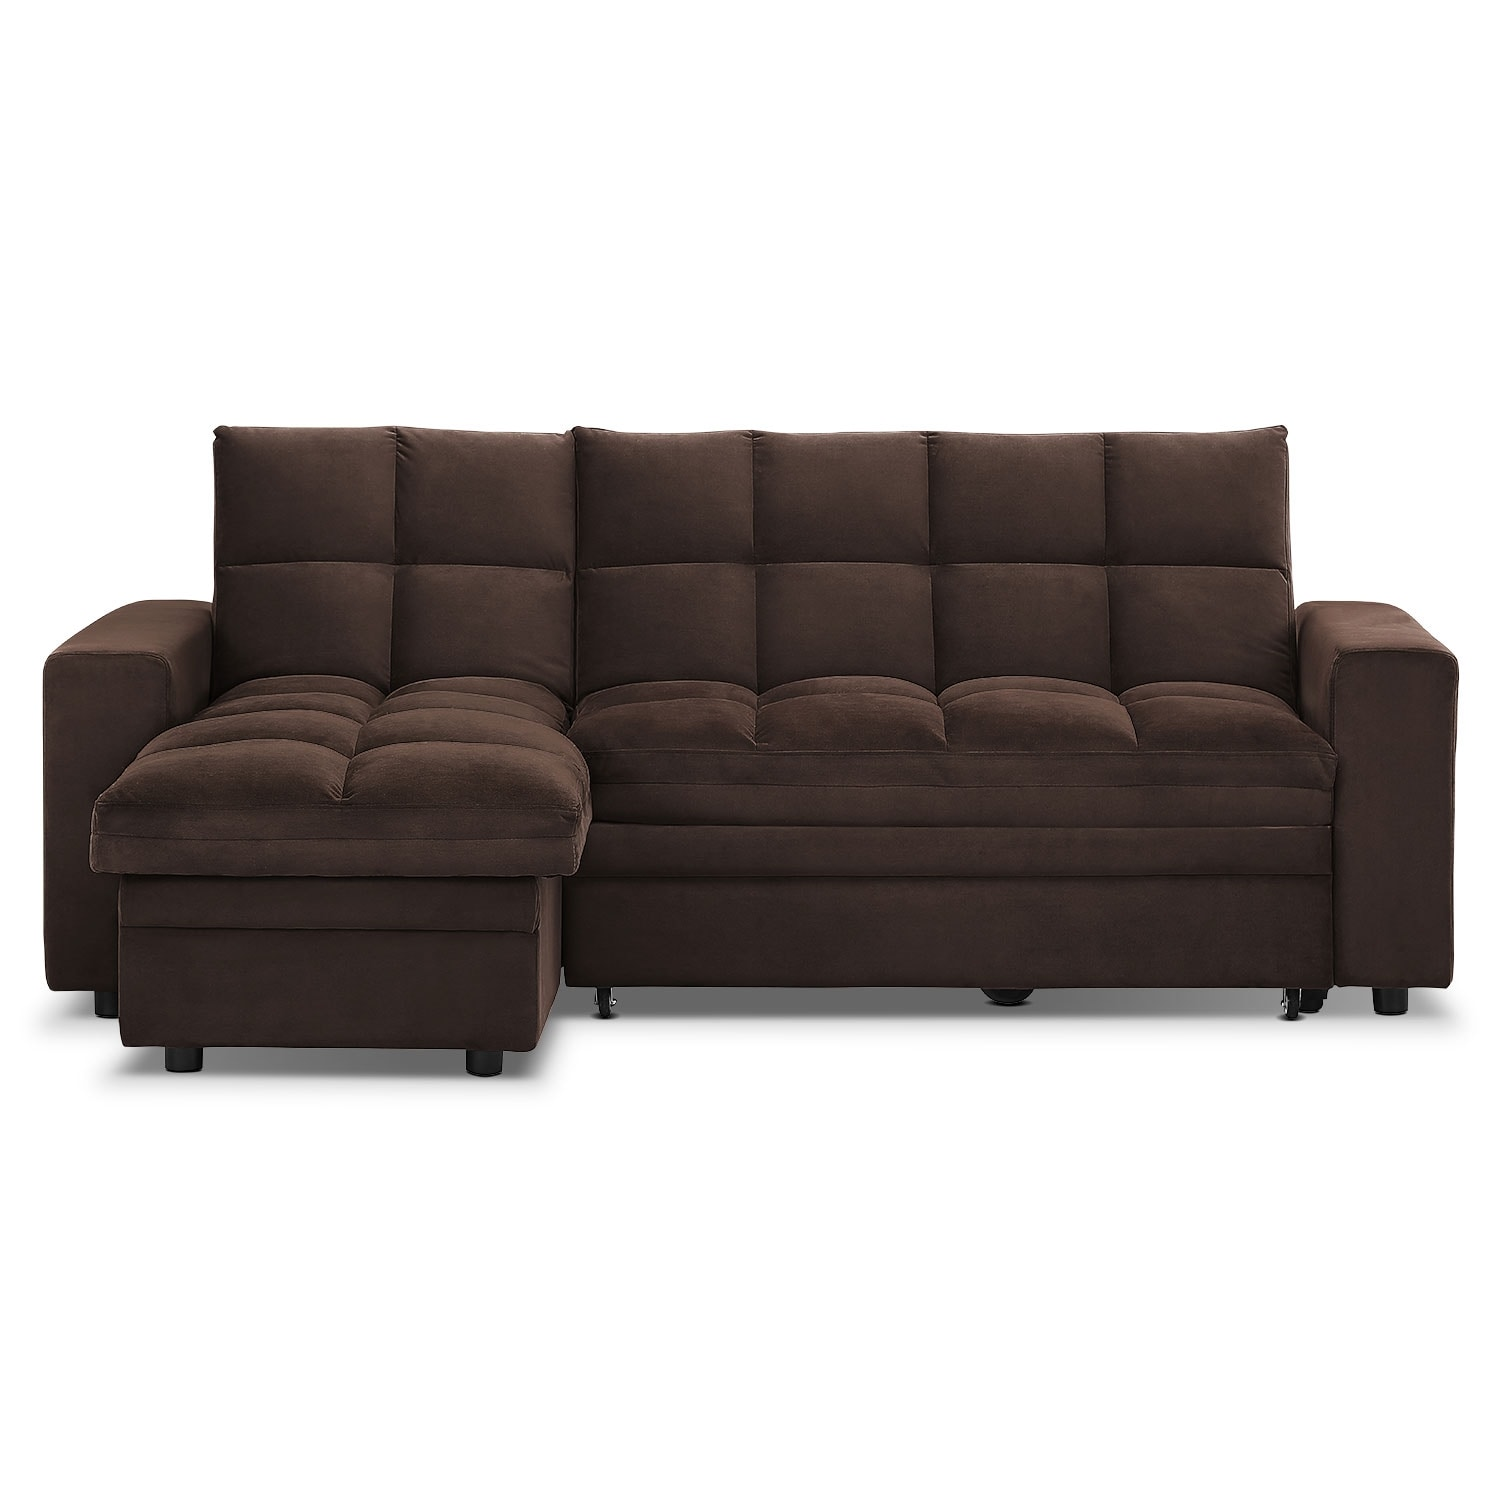 Metro 2 pc chaise sofa bed w storage value city furniture for Sofa bed outlet